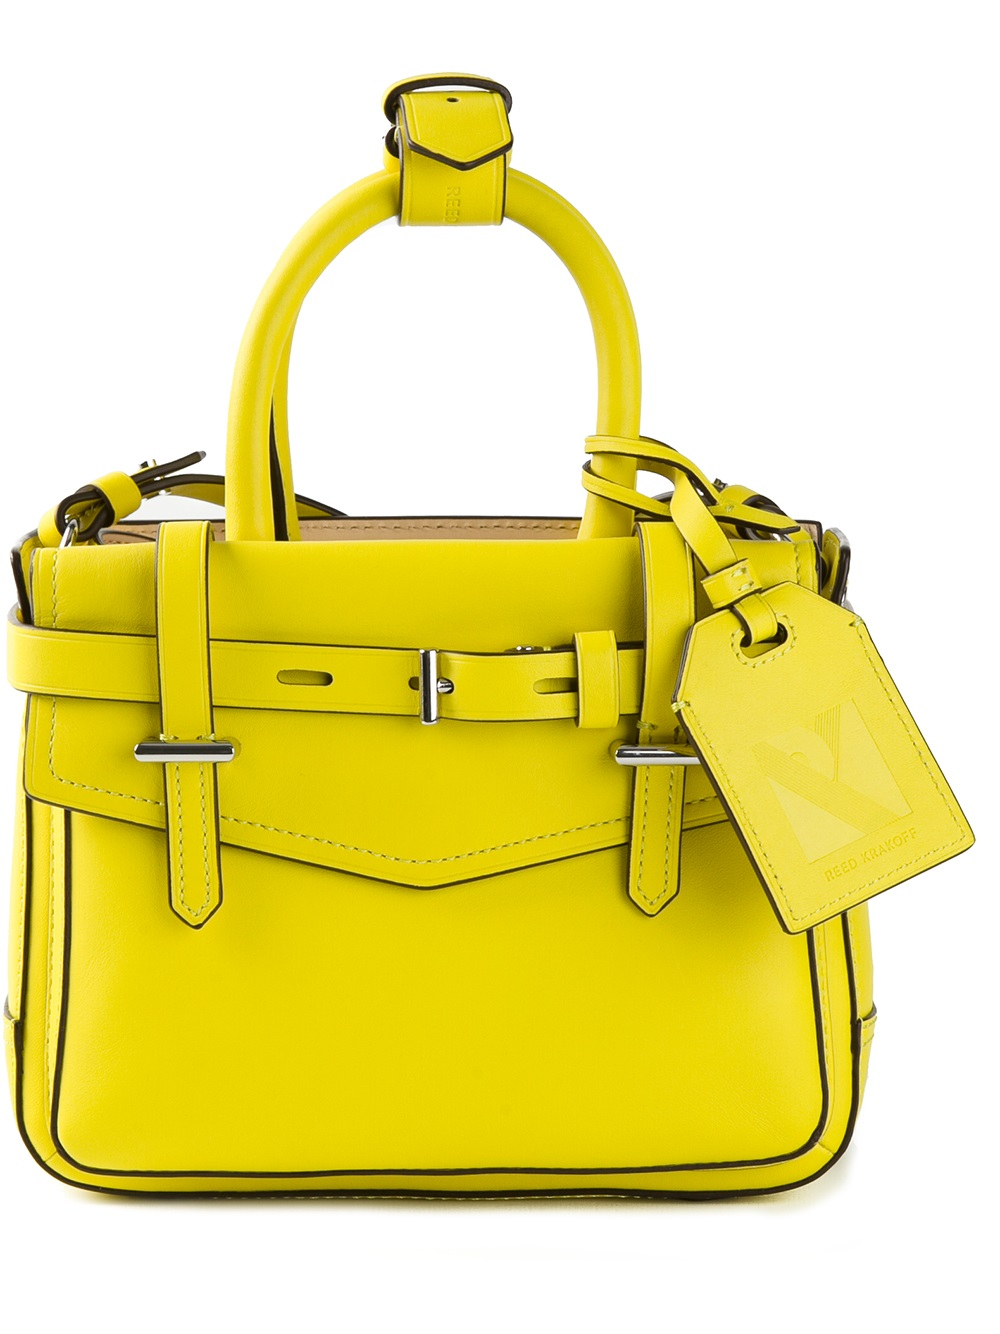 95 Best Reed Krakoff images | Reed krakoff, Bags, Leather bags